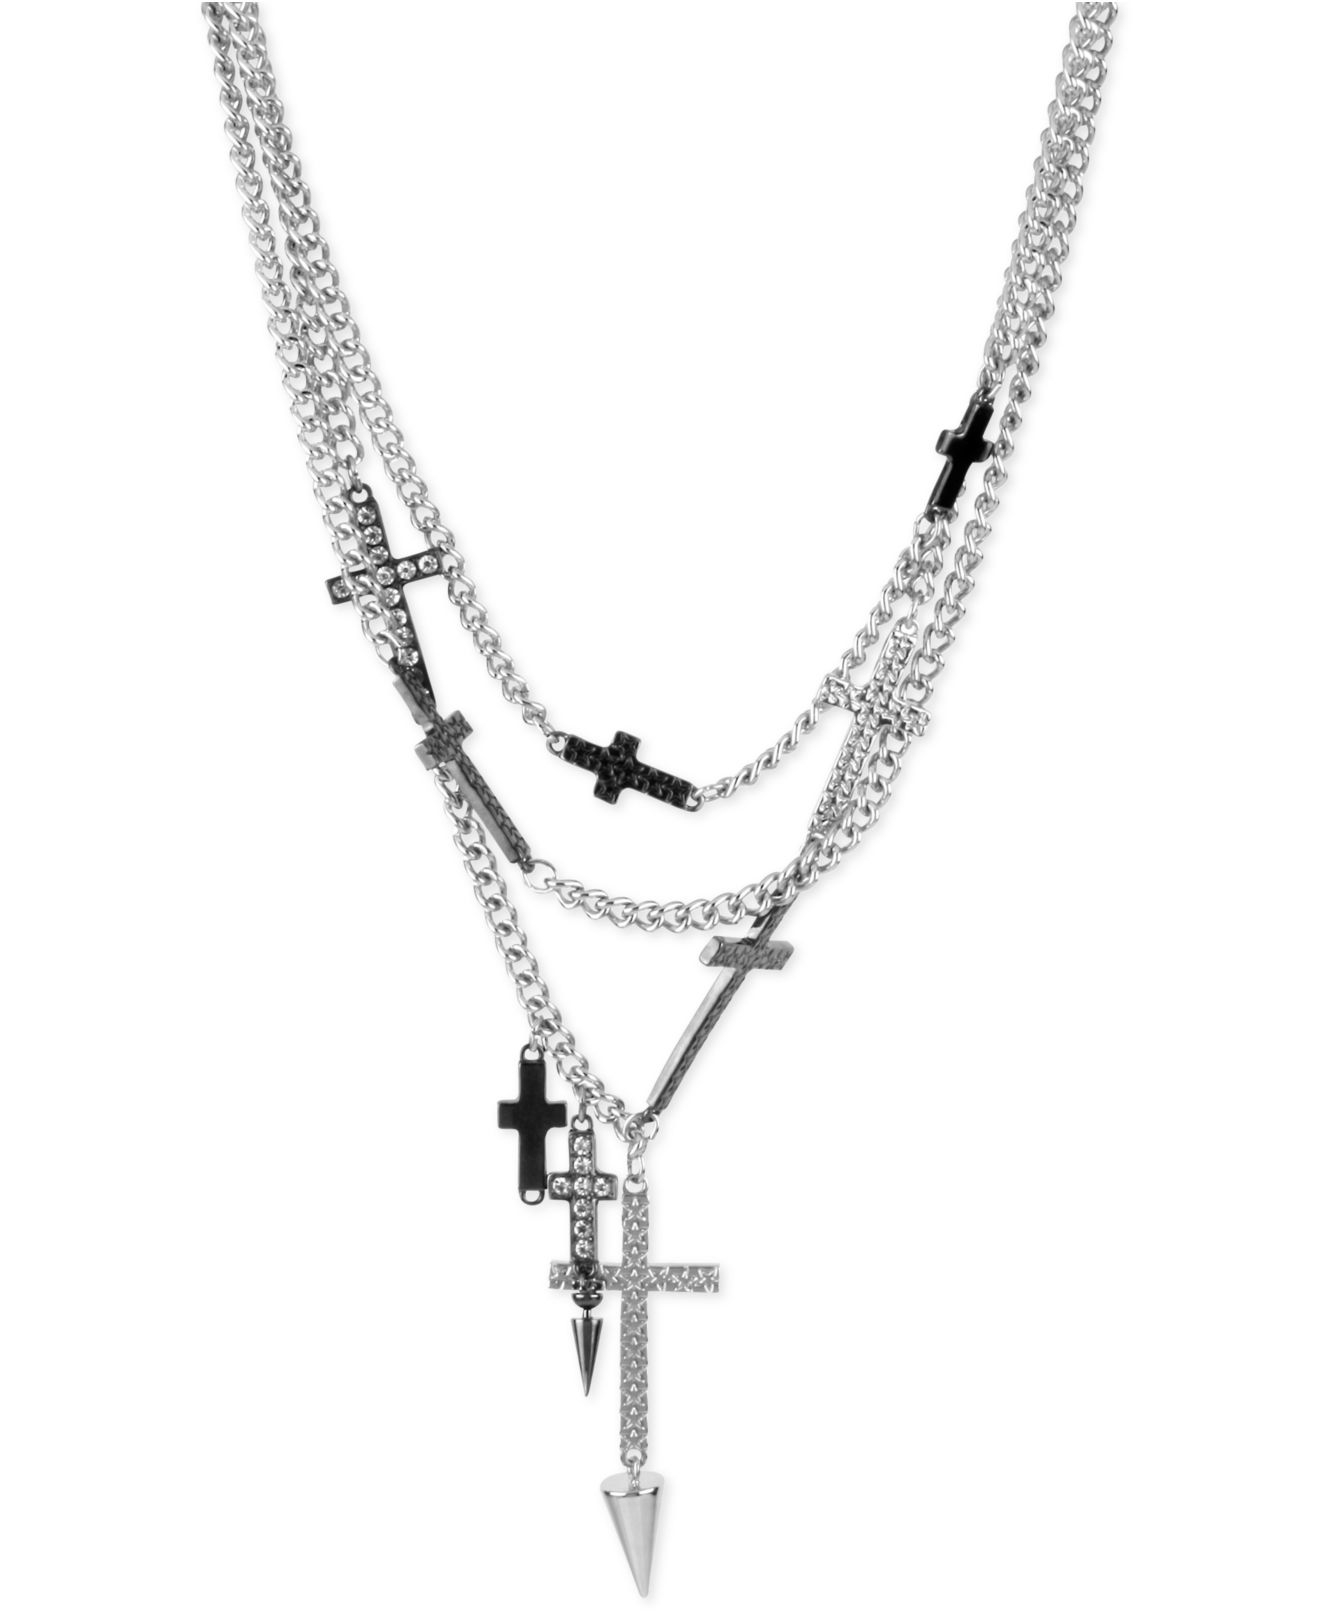 Kc Designs Byzantine Cross Necklace White Gold 1 together with Roberto Coin Tiny Treasures Diamond And 18k White Gold Baby Cross Necklace White Gold likewise Hbn14 3338svcl Hair Band 3pcs Set Silver furthermore David Yurman Midnight Melange Oval Pendant With Diamonds additionally Armenta Diamond Cravelli Cross Large Hoop Earrings. on cross purses and wallets